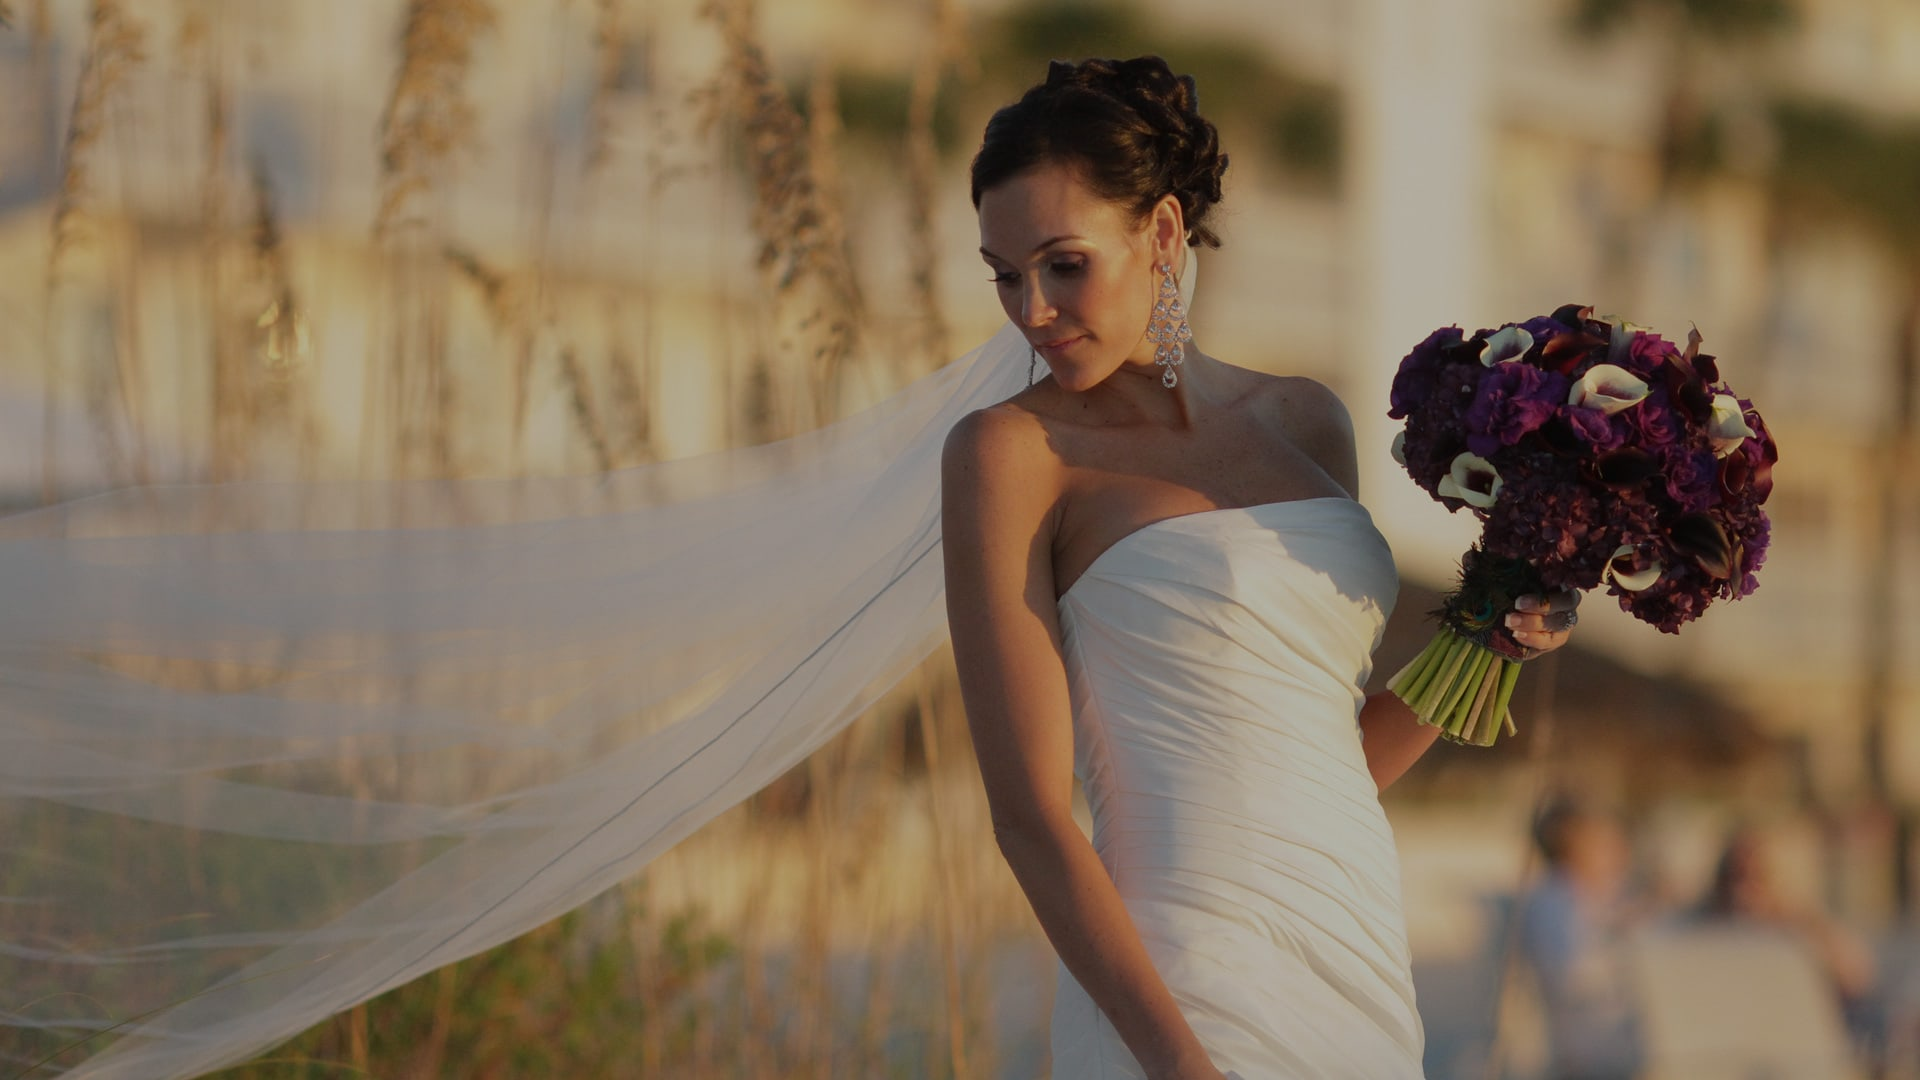 HIGH QUALITY WEDDING SERVICES